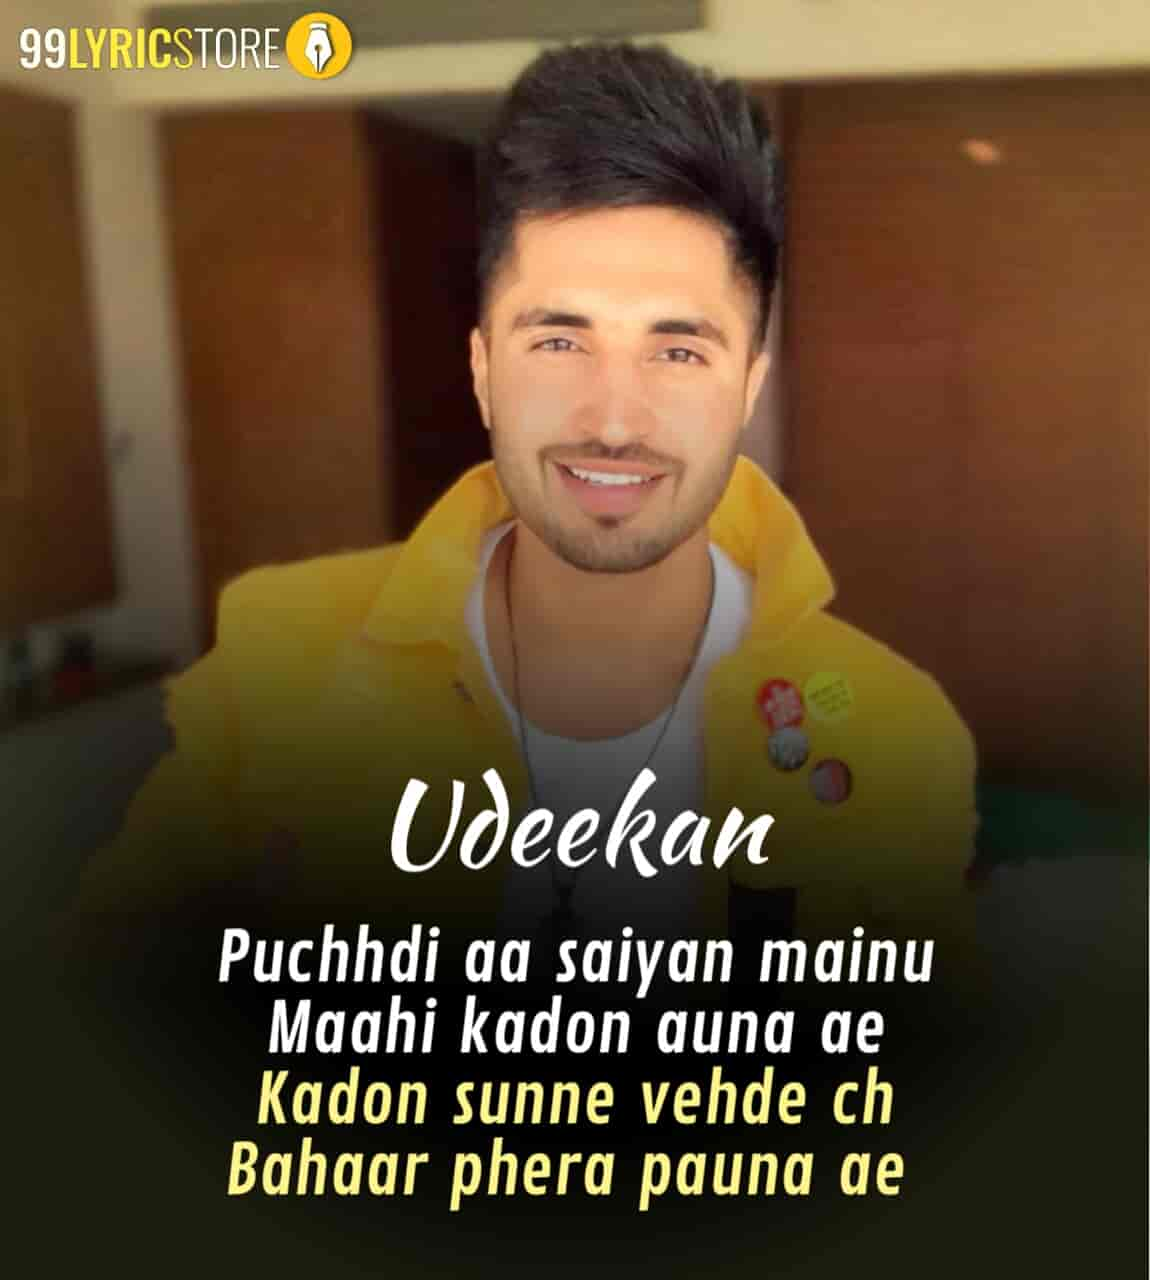 Udeekan Punjabi Song Lyrics Sung by Jassi Gill